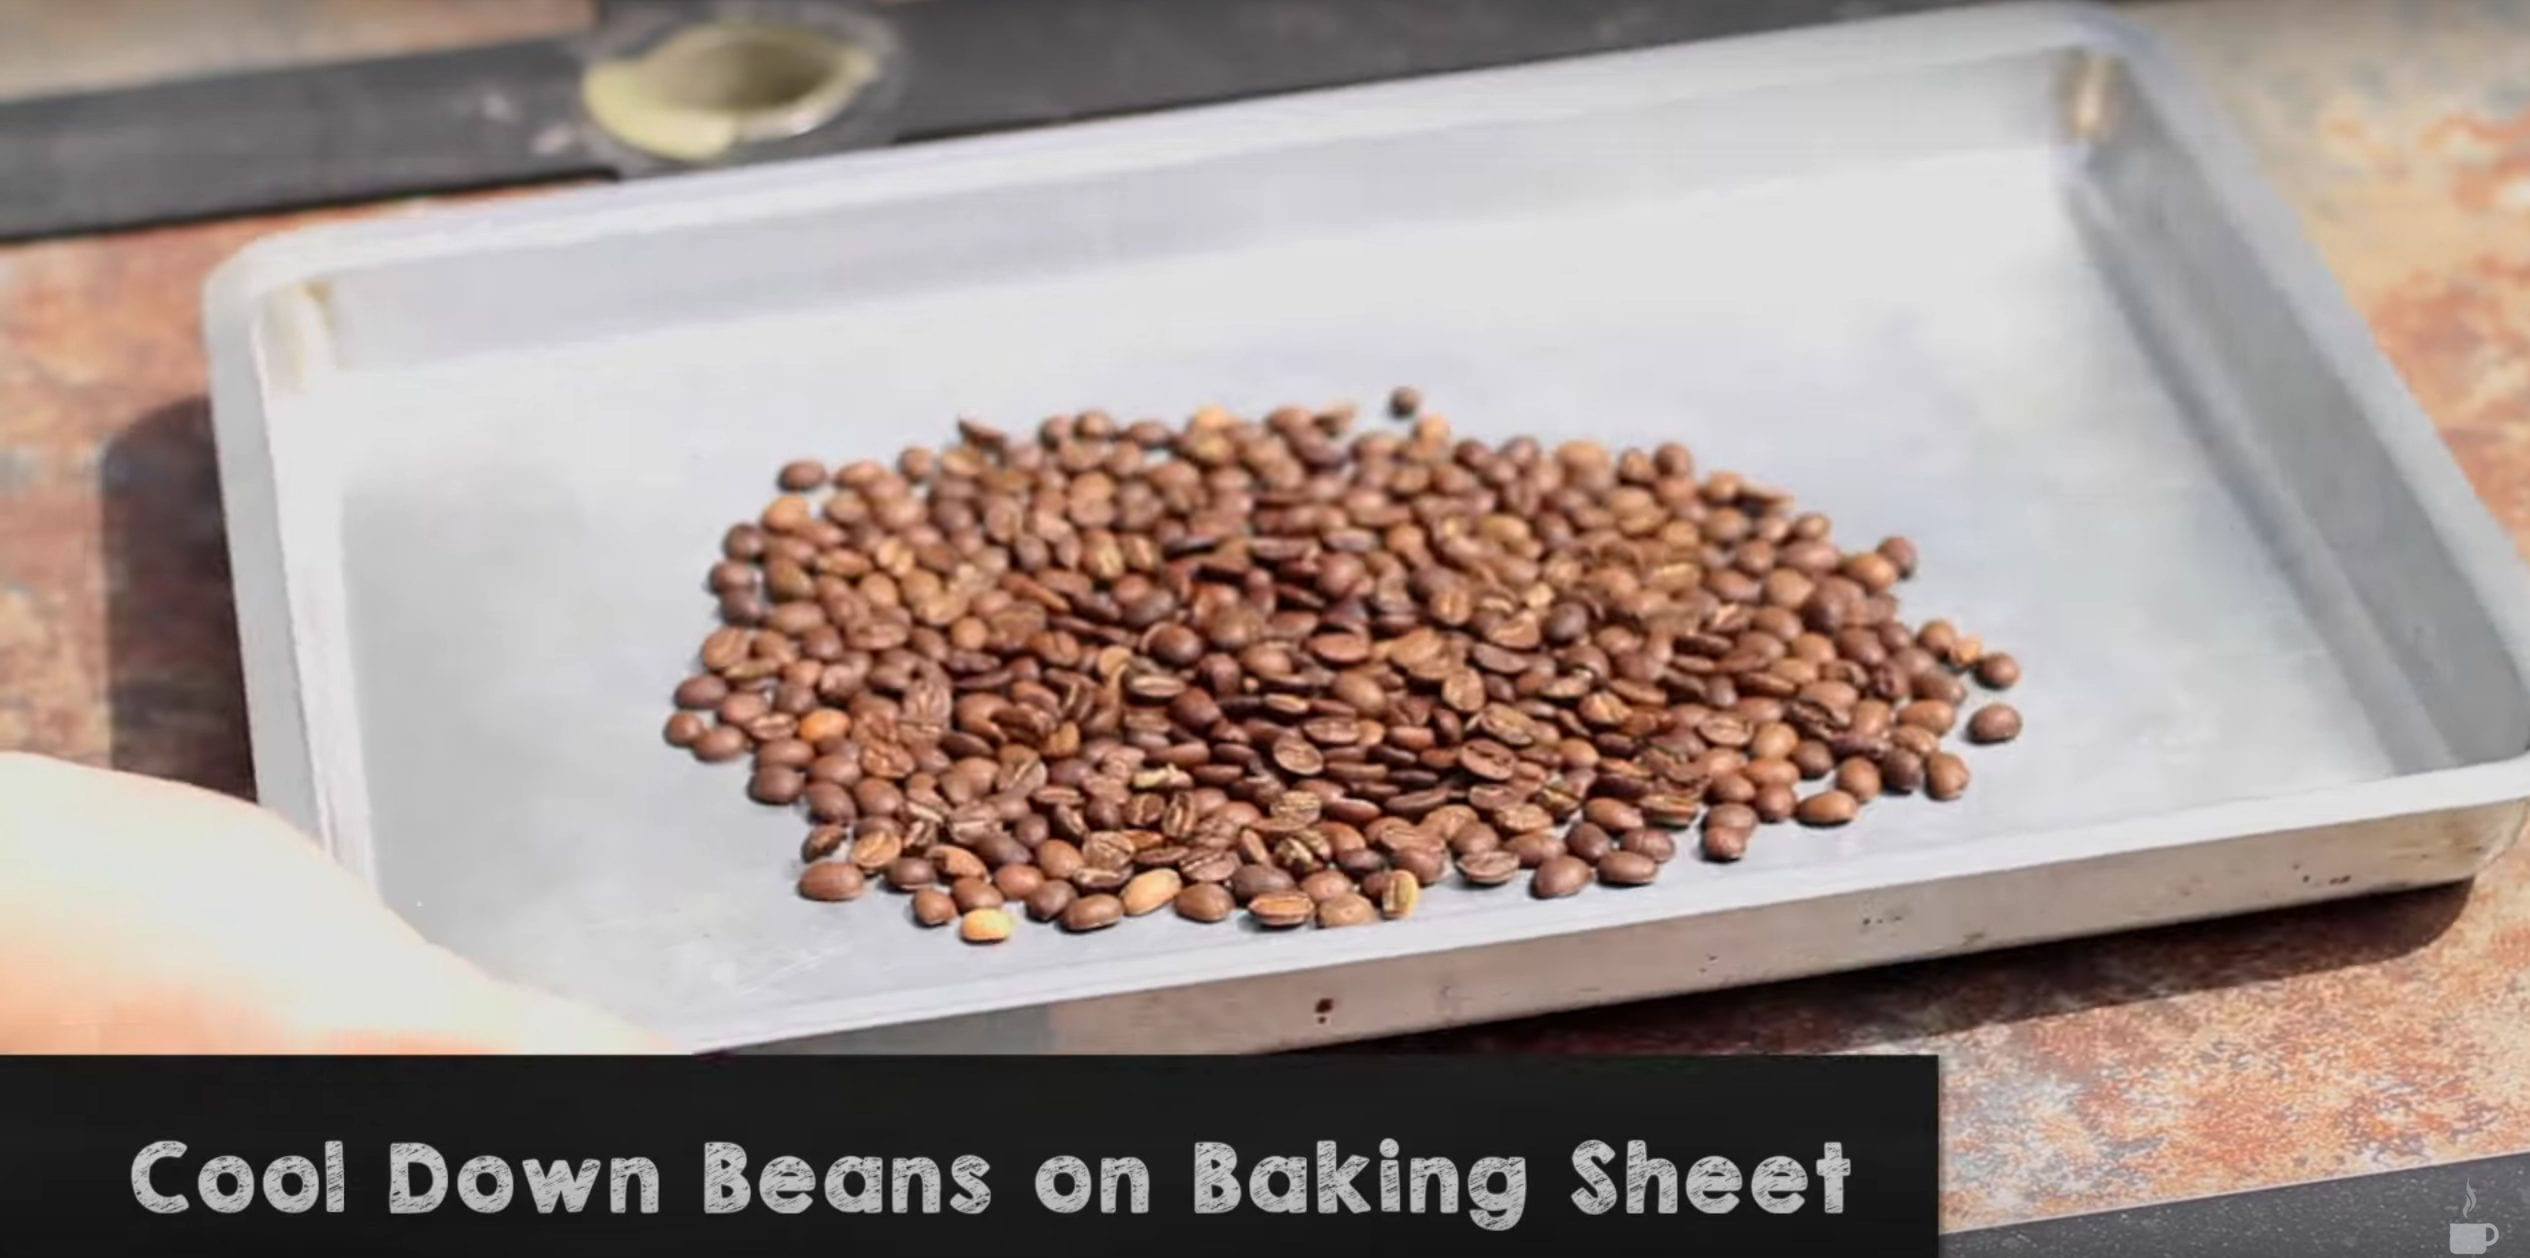 roasted coffee on baking tray